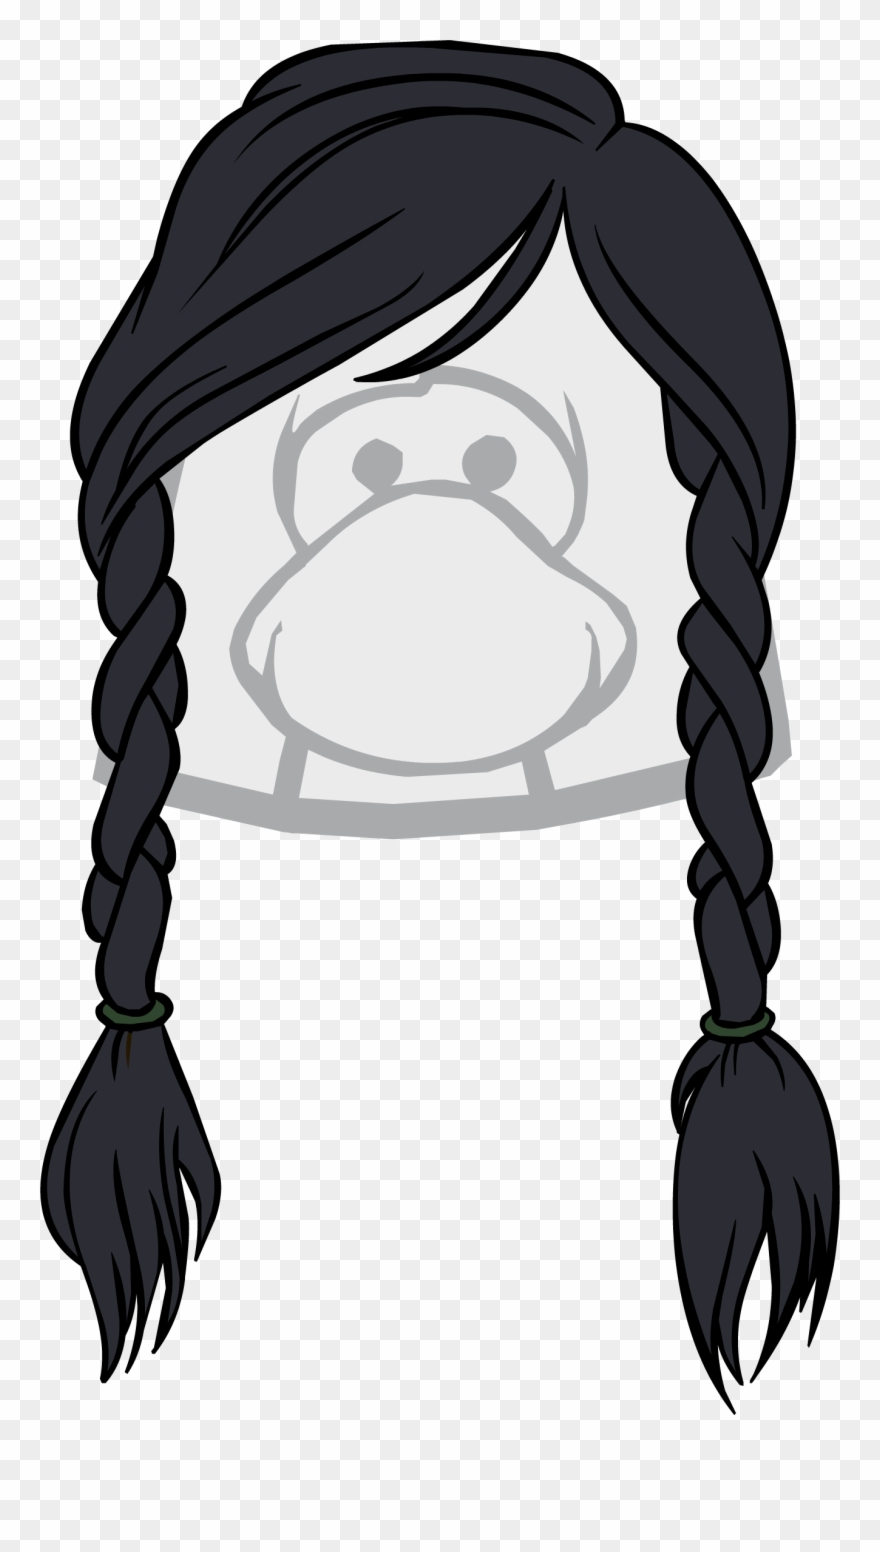 Wistful clipart clip black and white download The Wistful - Club Penguin Brown Hair Clipart (#3356152 ... clip black and white download